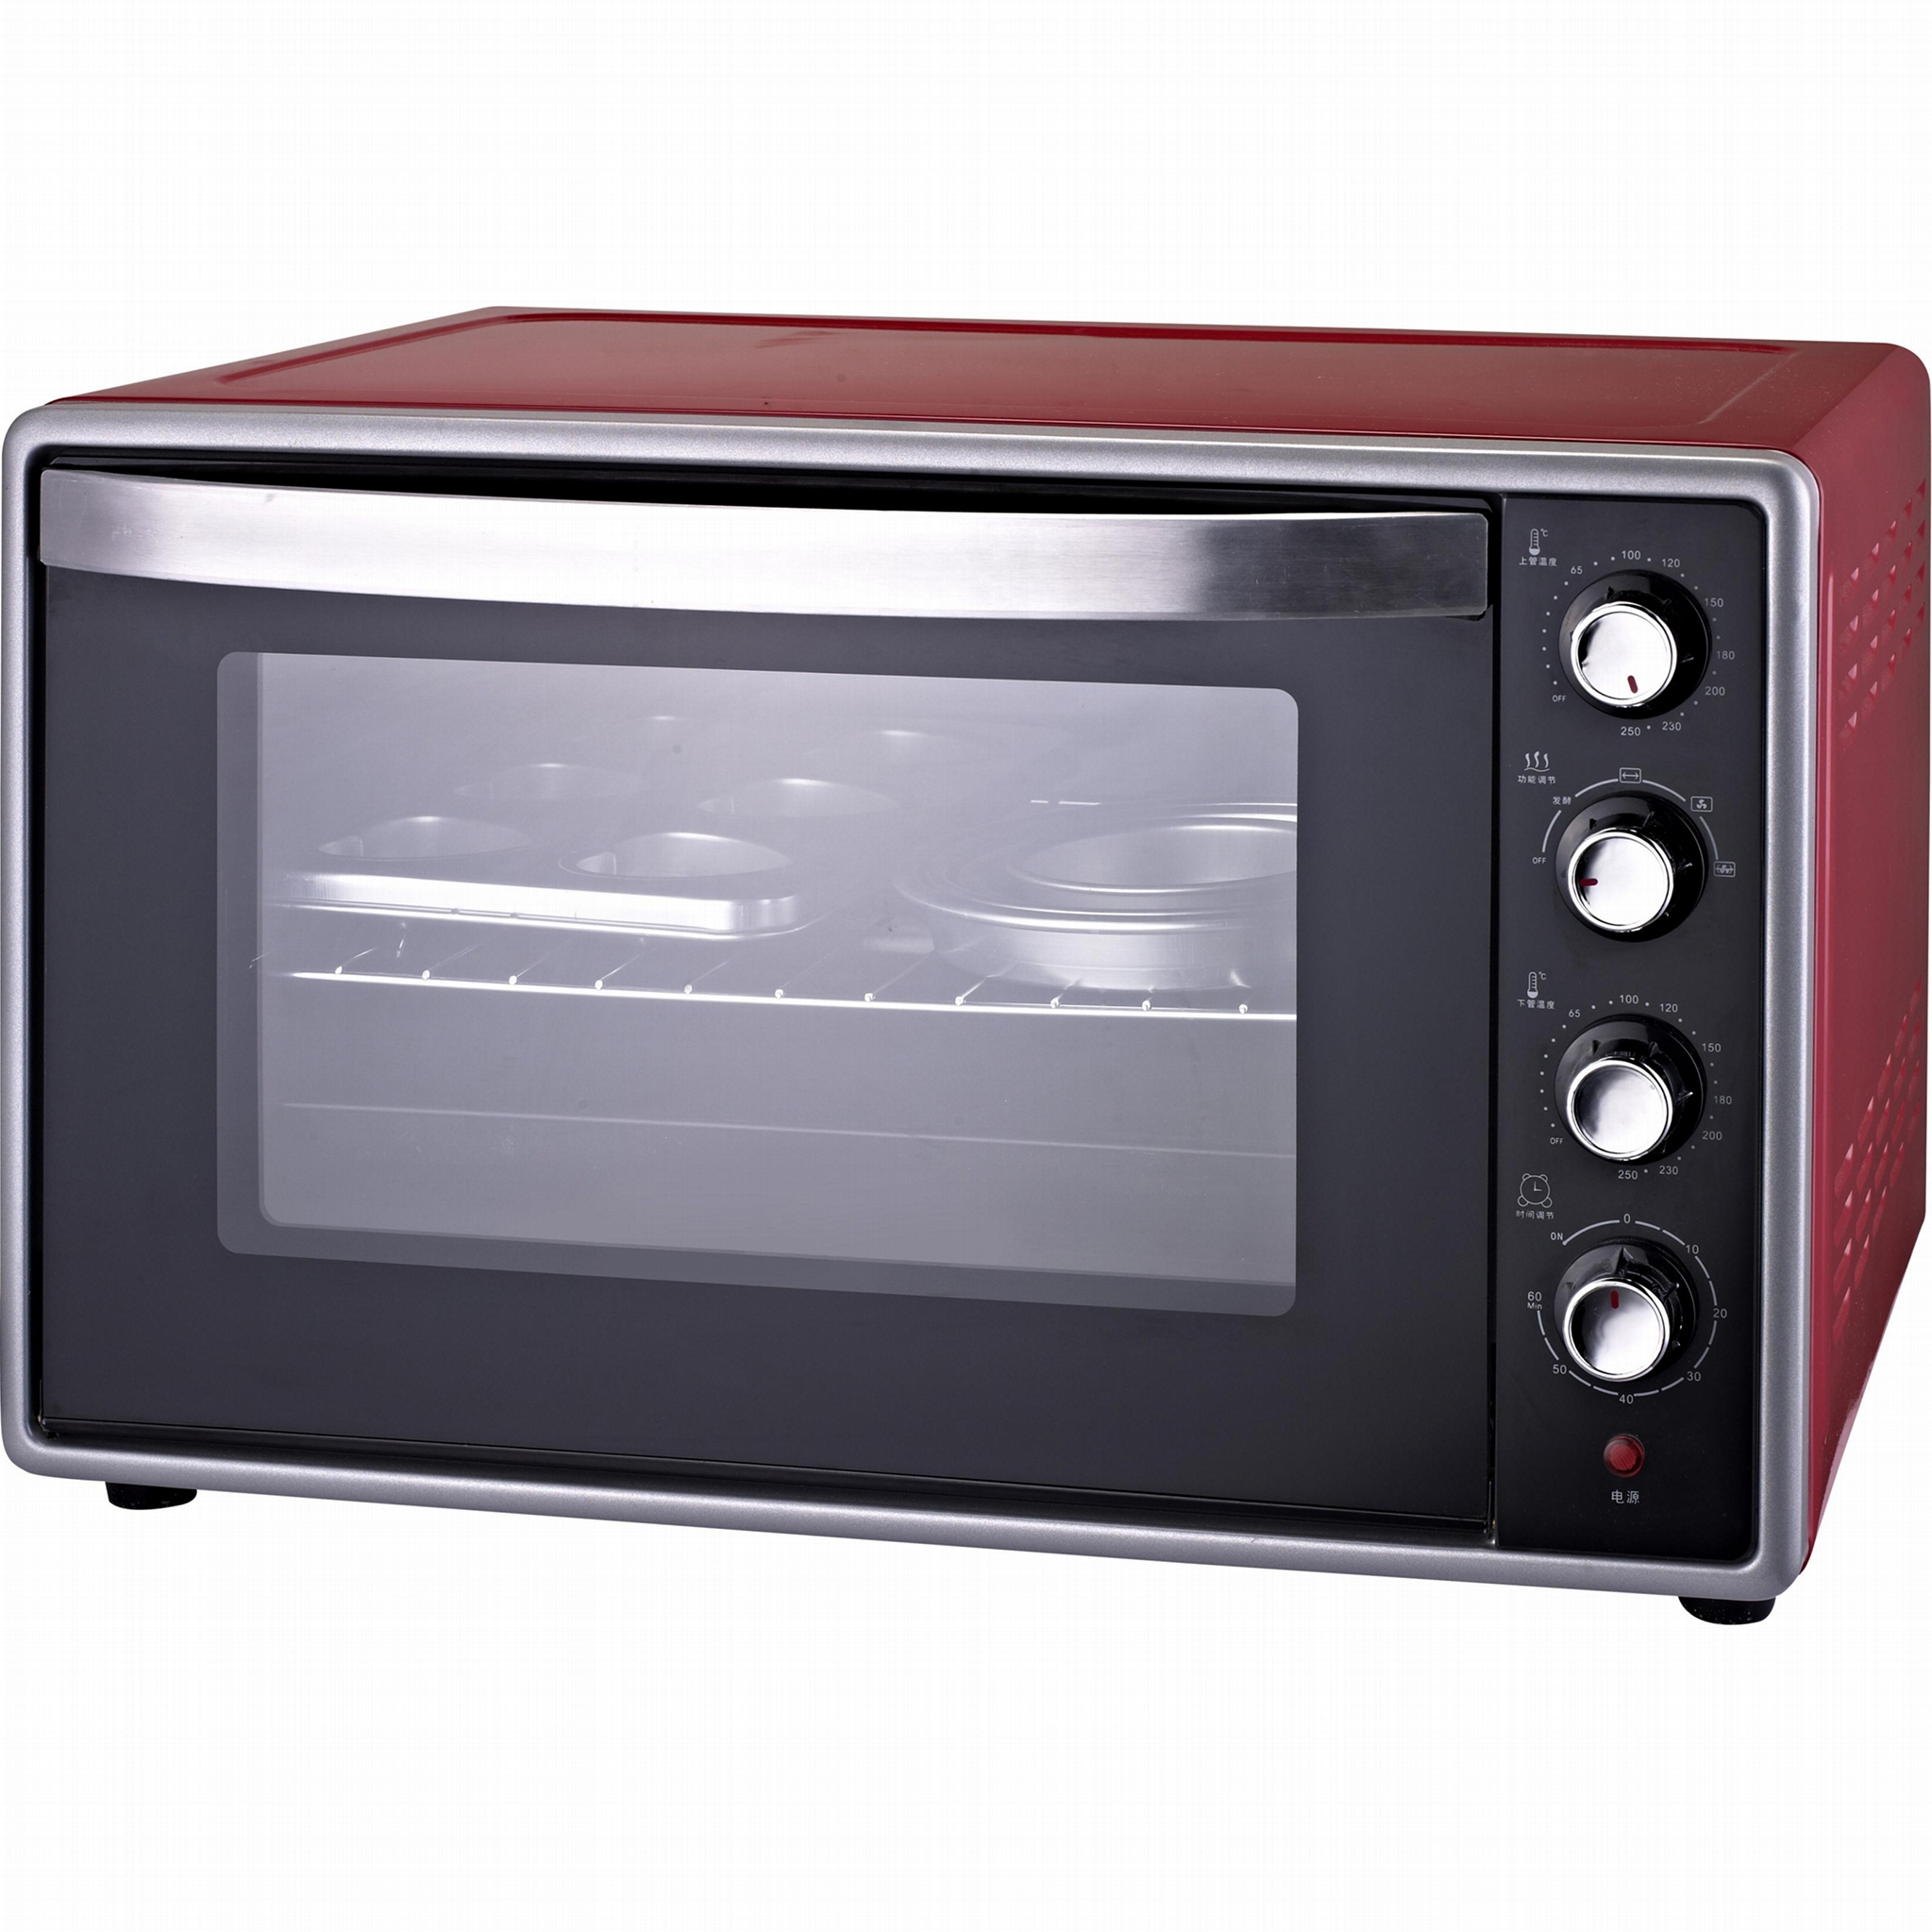 HOPZE 38L high quality multi-functional household toaster oven as 1